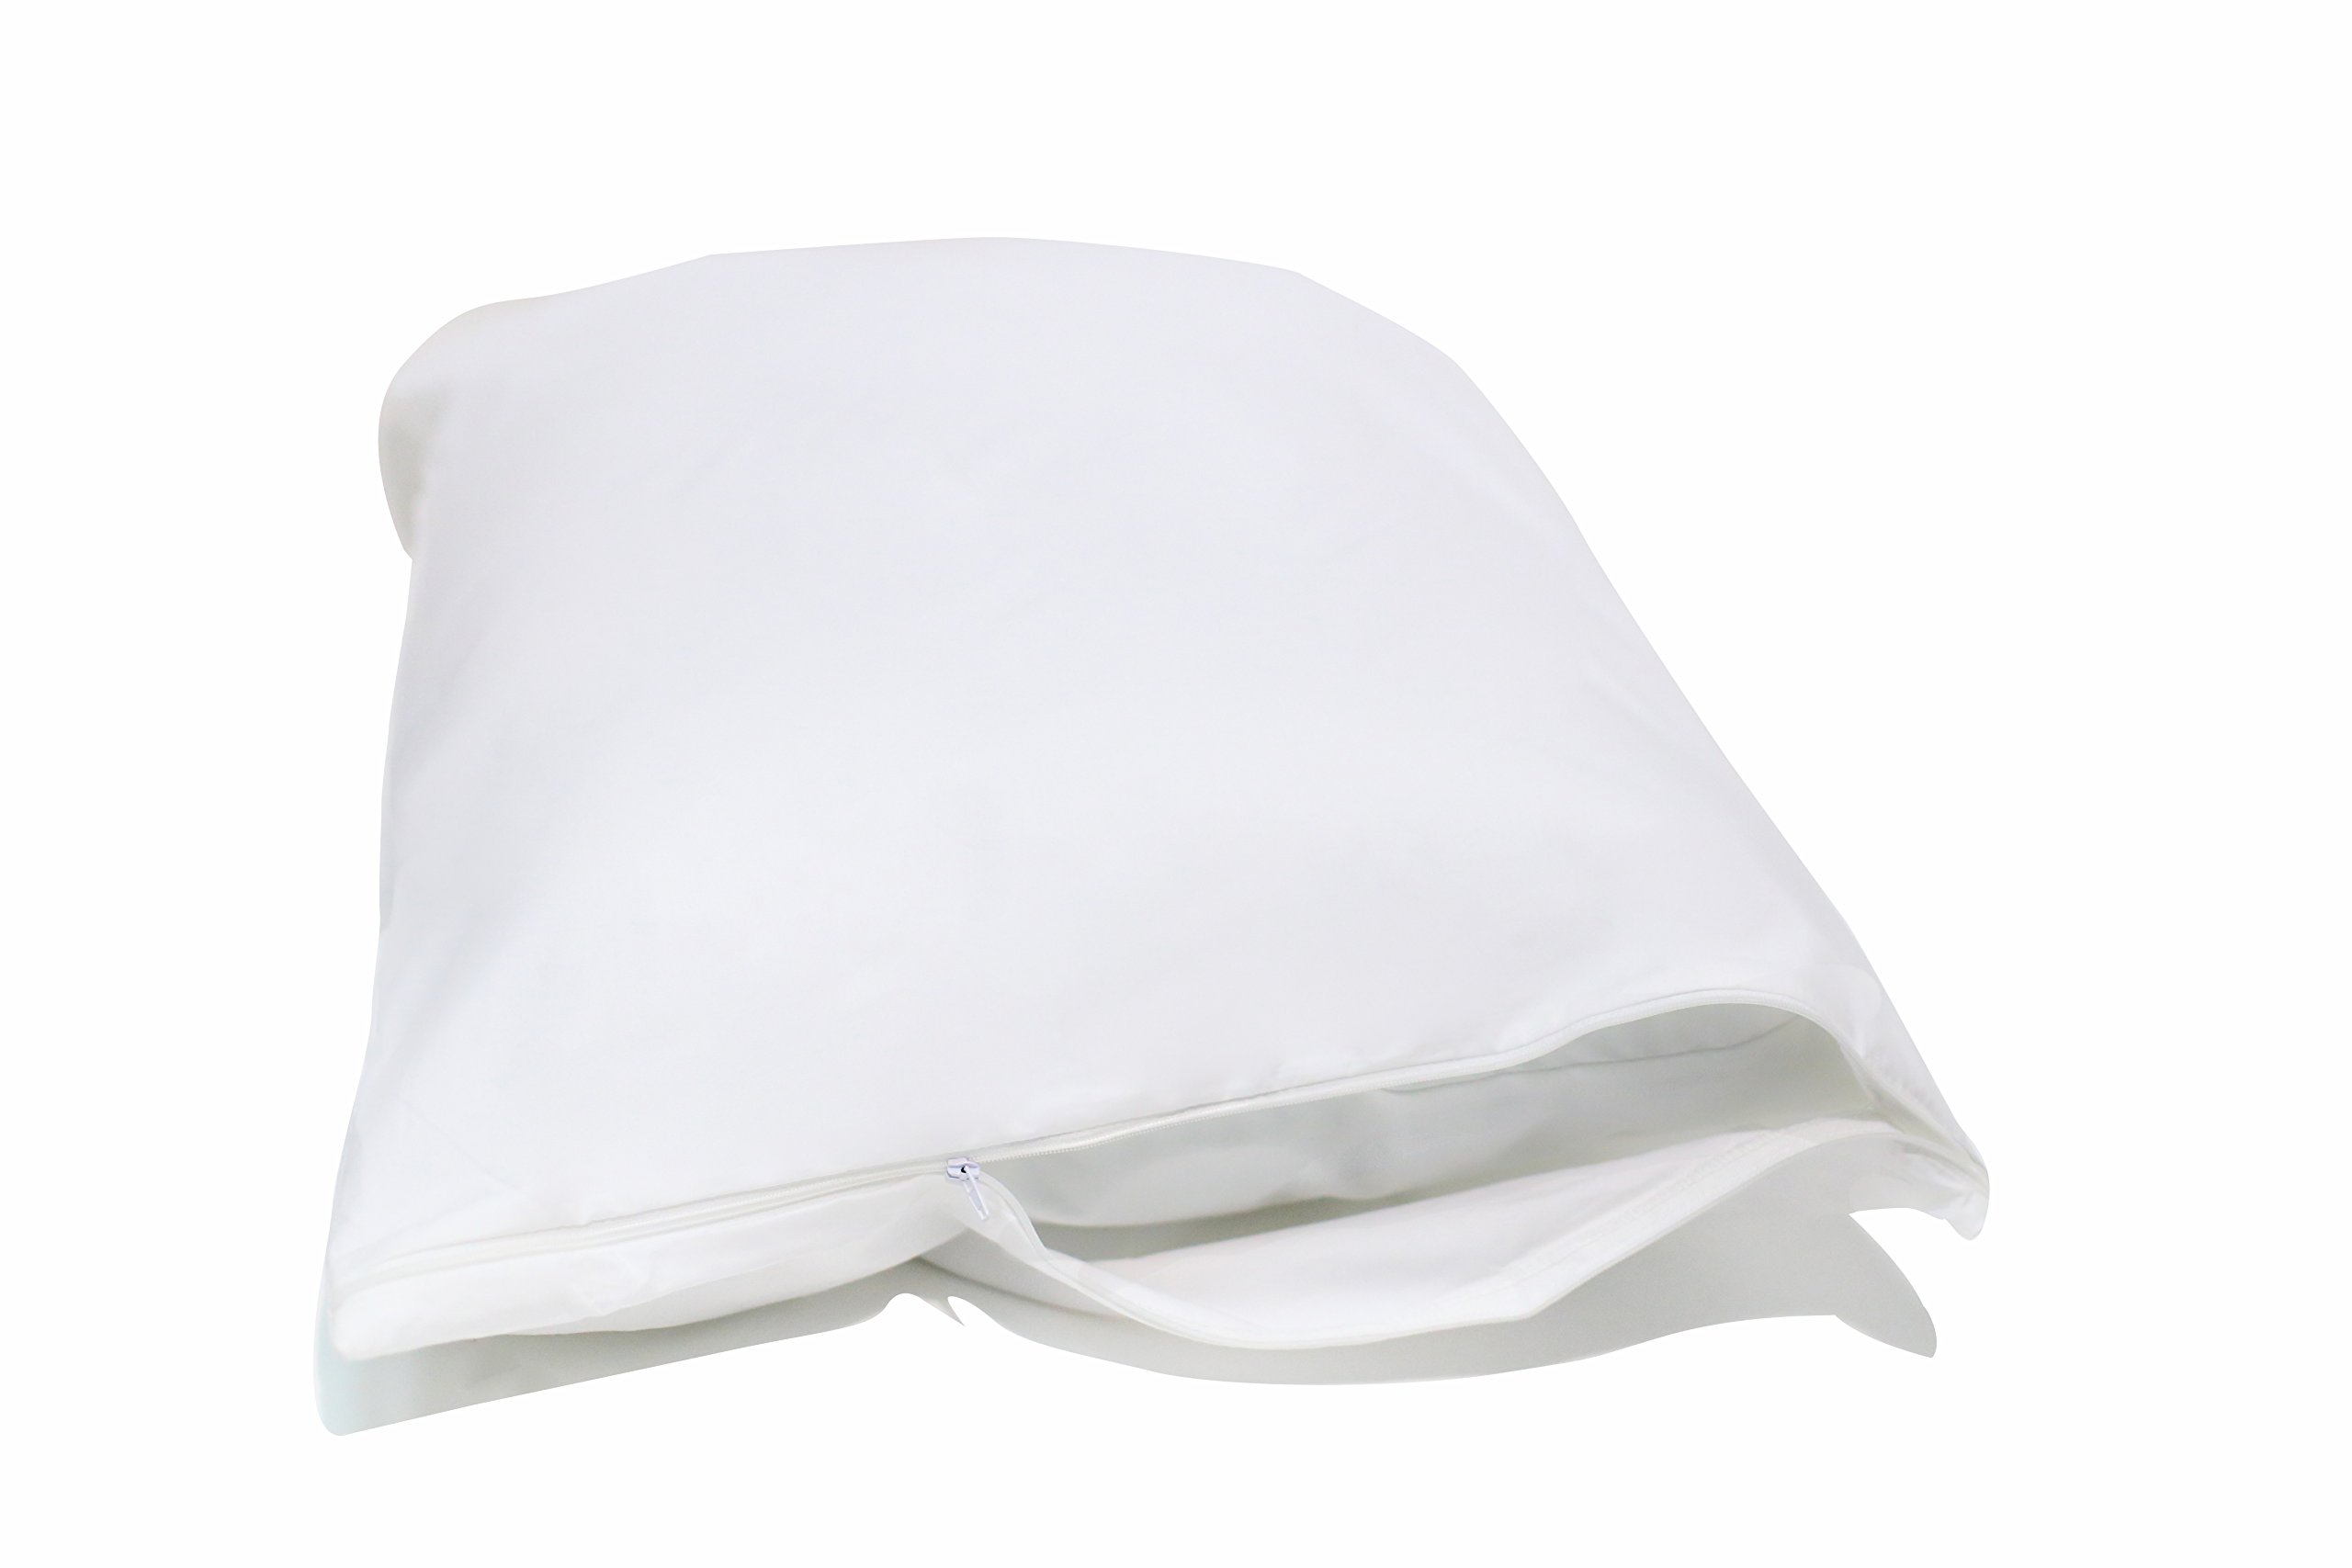 Allersoft Standard 2 Pack Allergy and Bed Bug Proof Pillow Cover, White by Allersoft